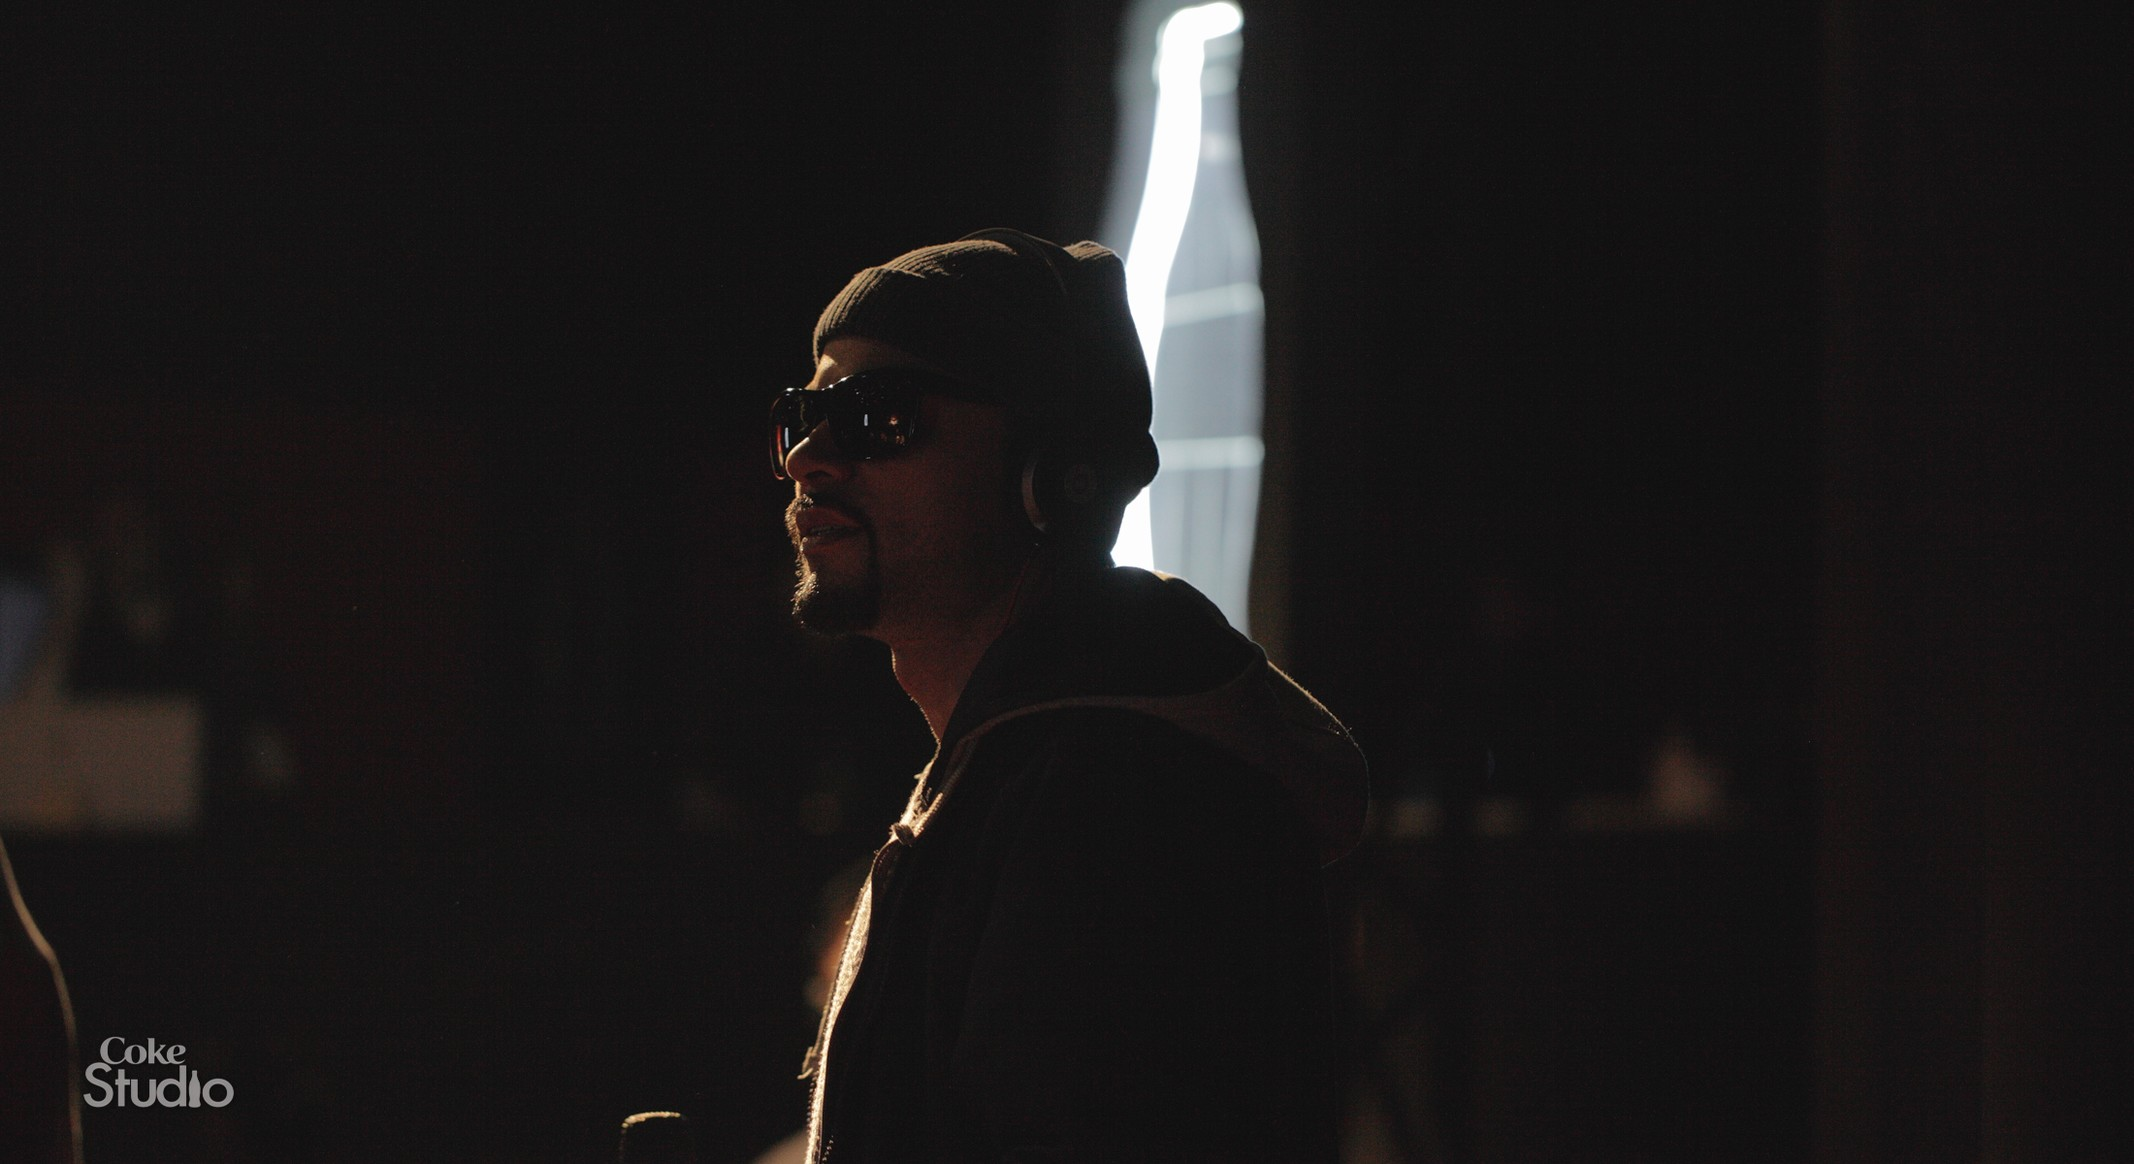 Bohemia in Coke Studio Season 5